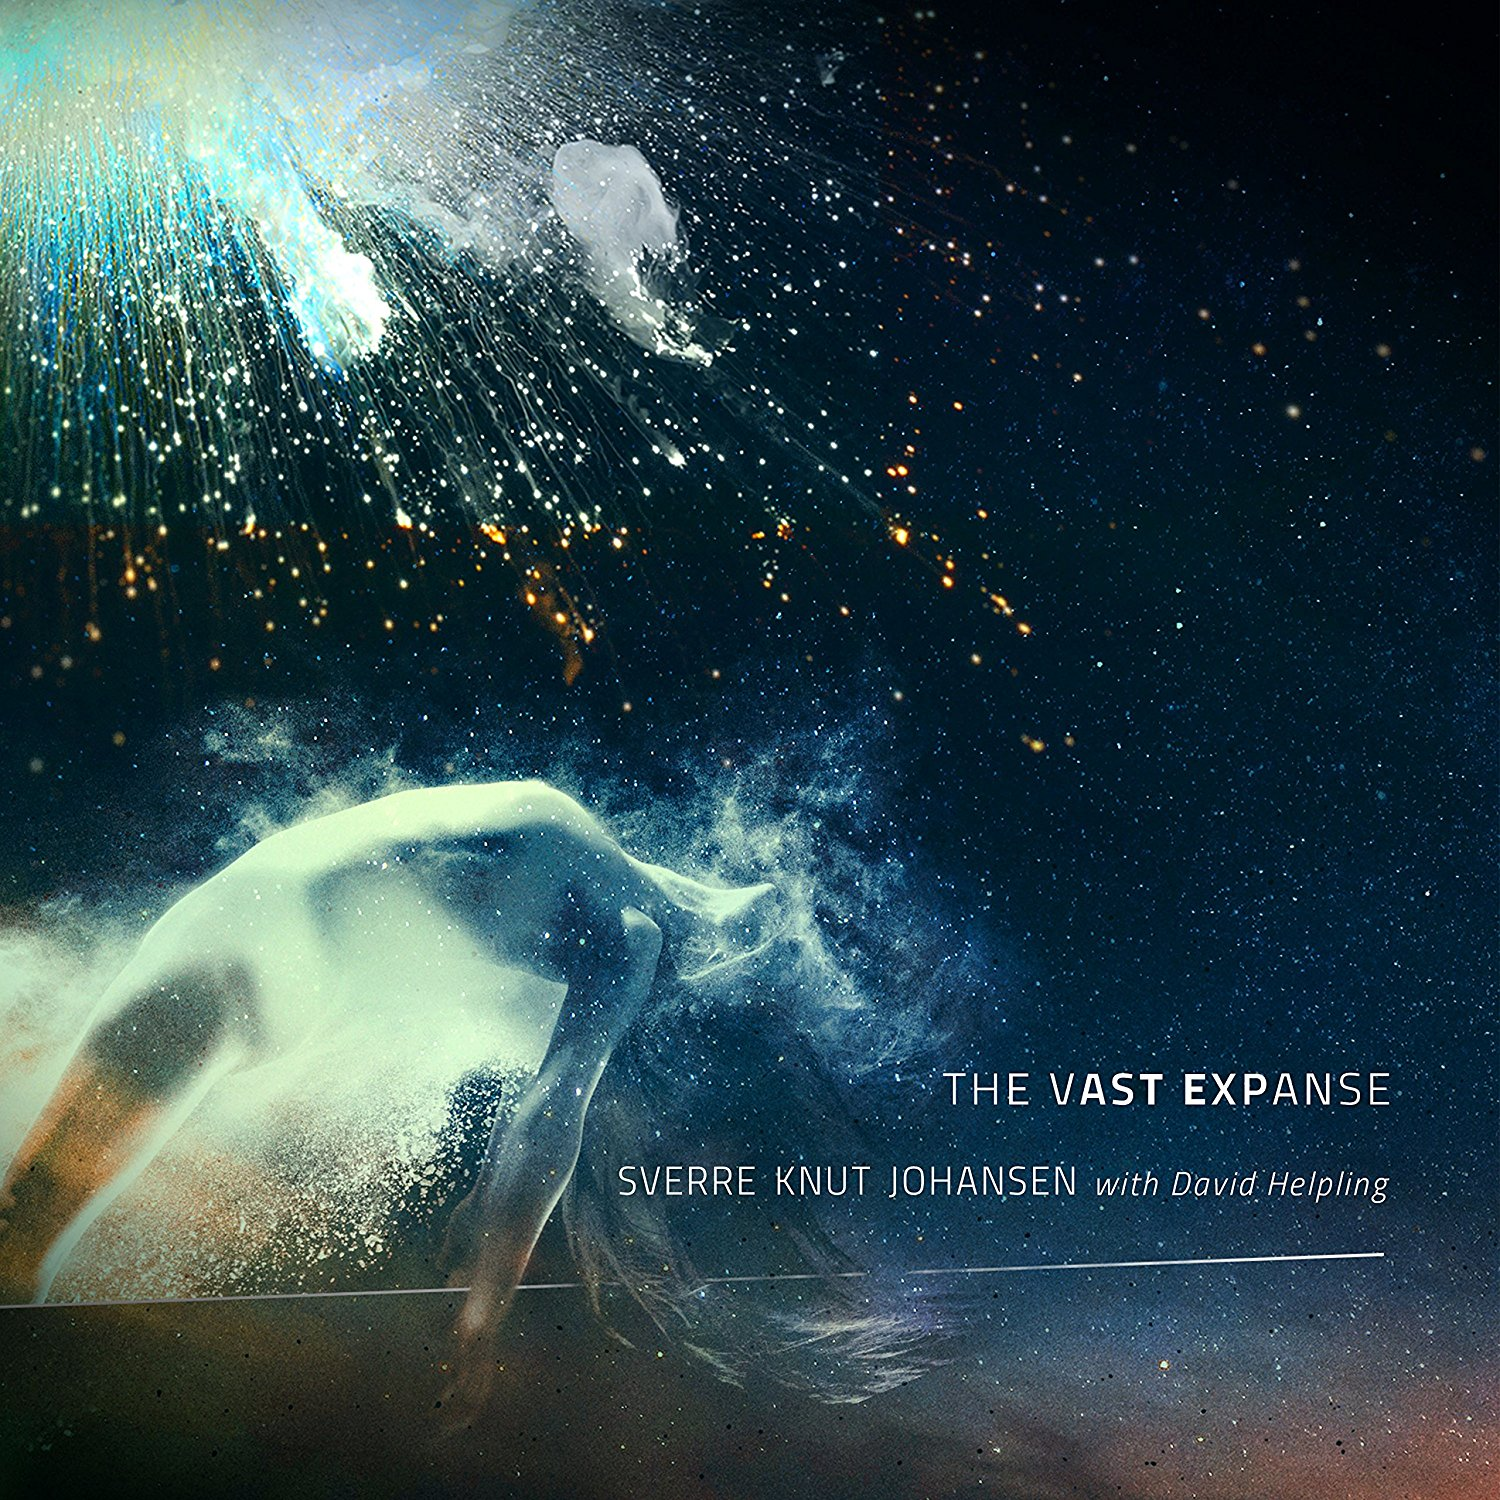 Sverre Knut Johansen with David Helpling — The Vast Expanse